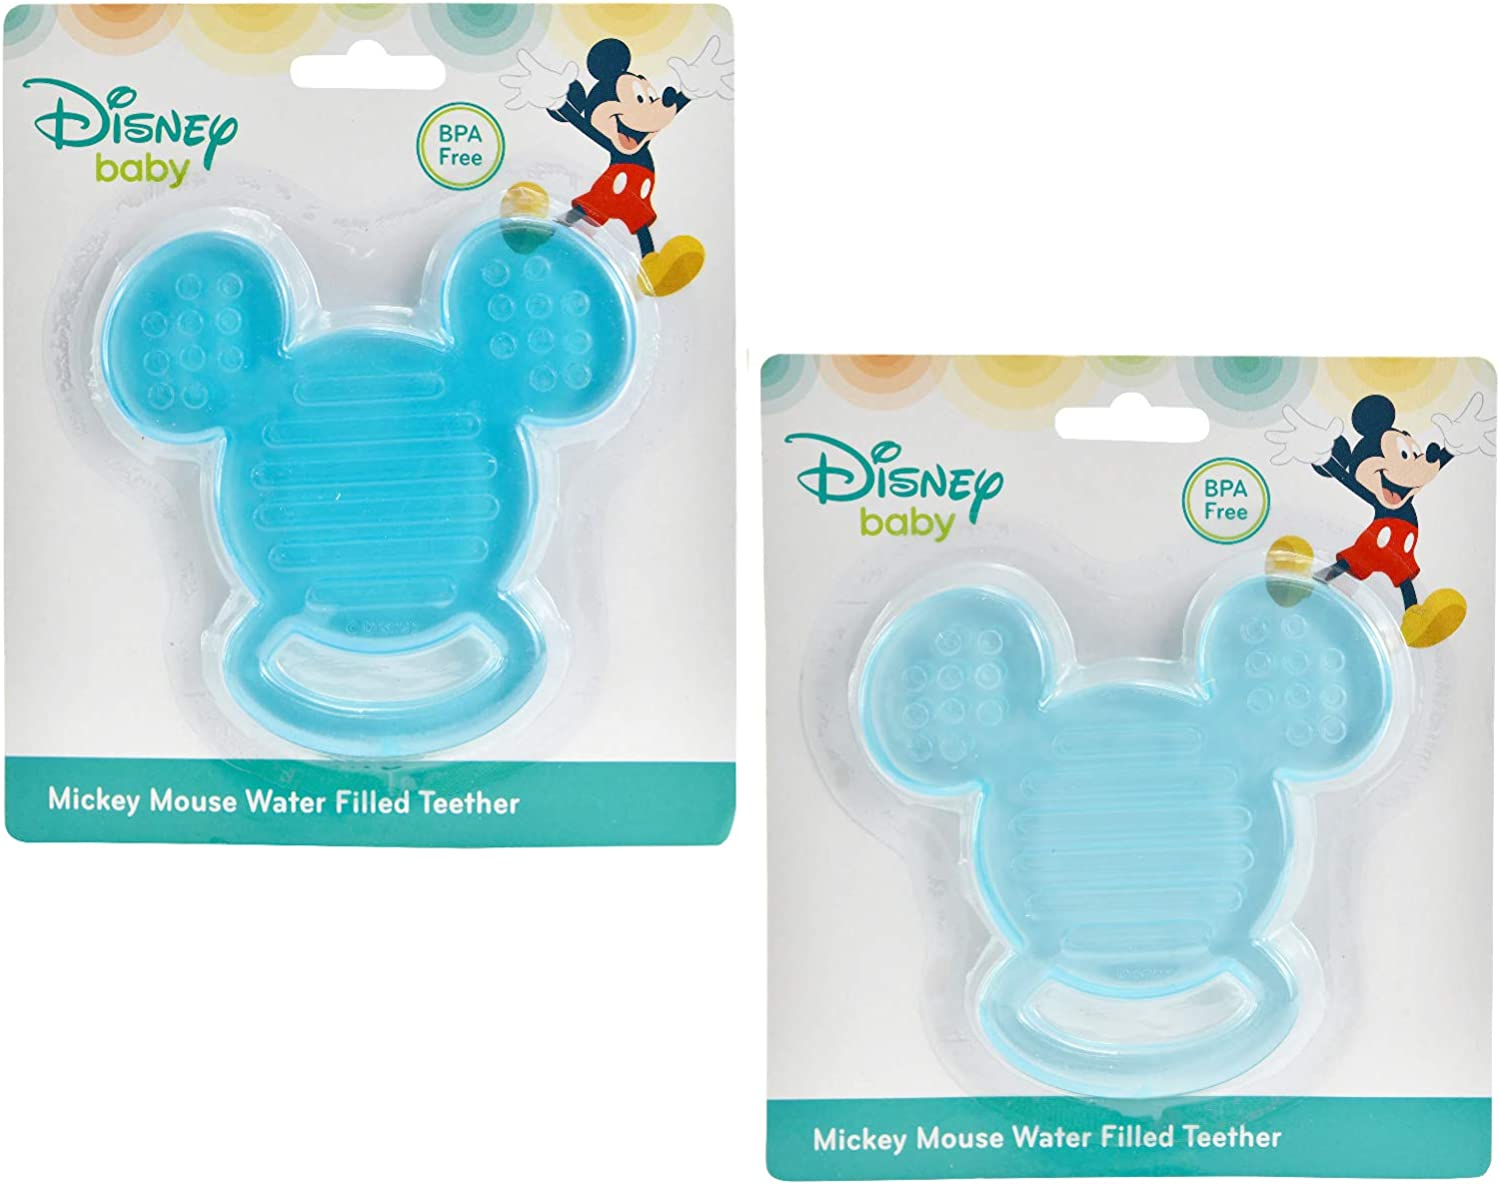 BRAND NEW IN PACKAGE Disney Baby Mickey Mouse BPA Free Water Filled Teether Set